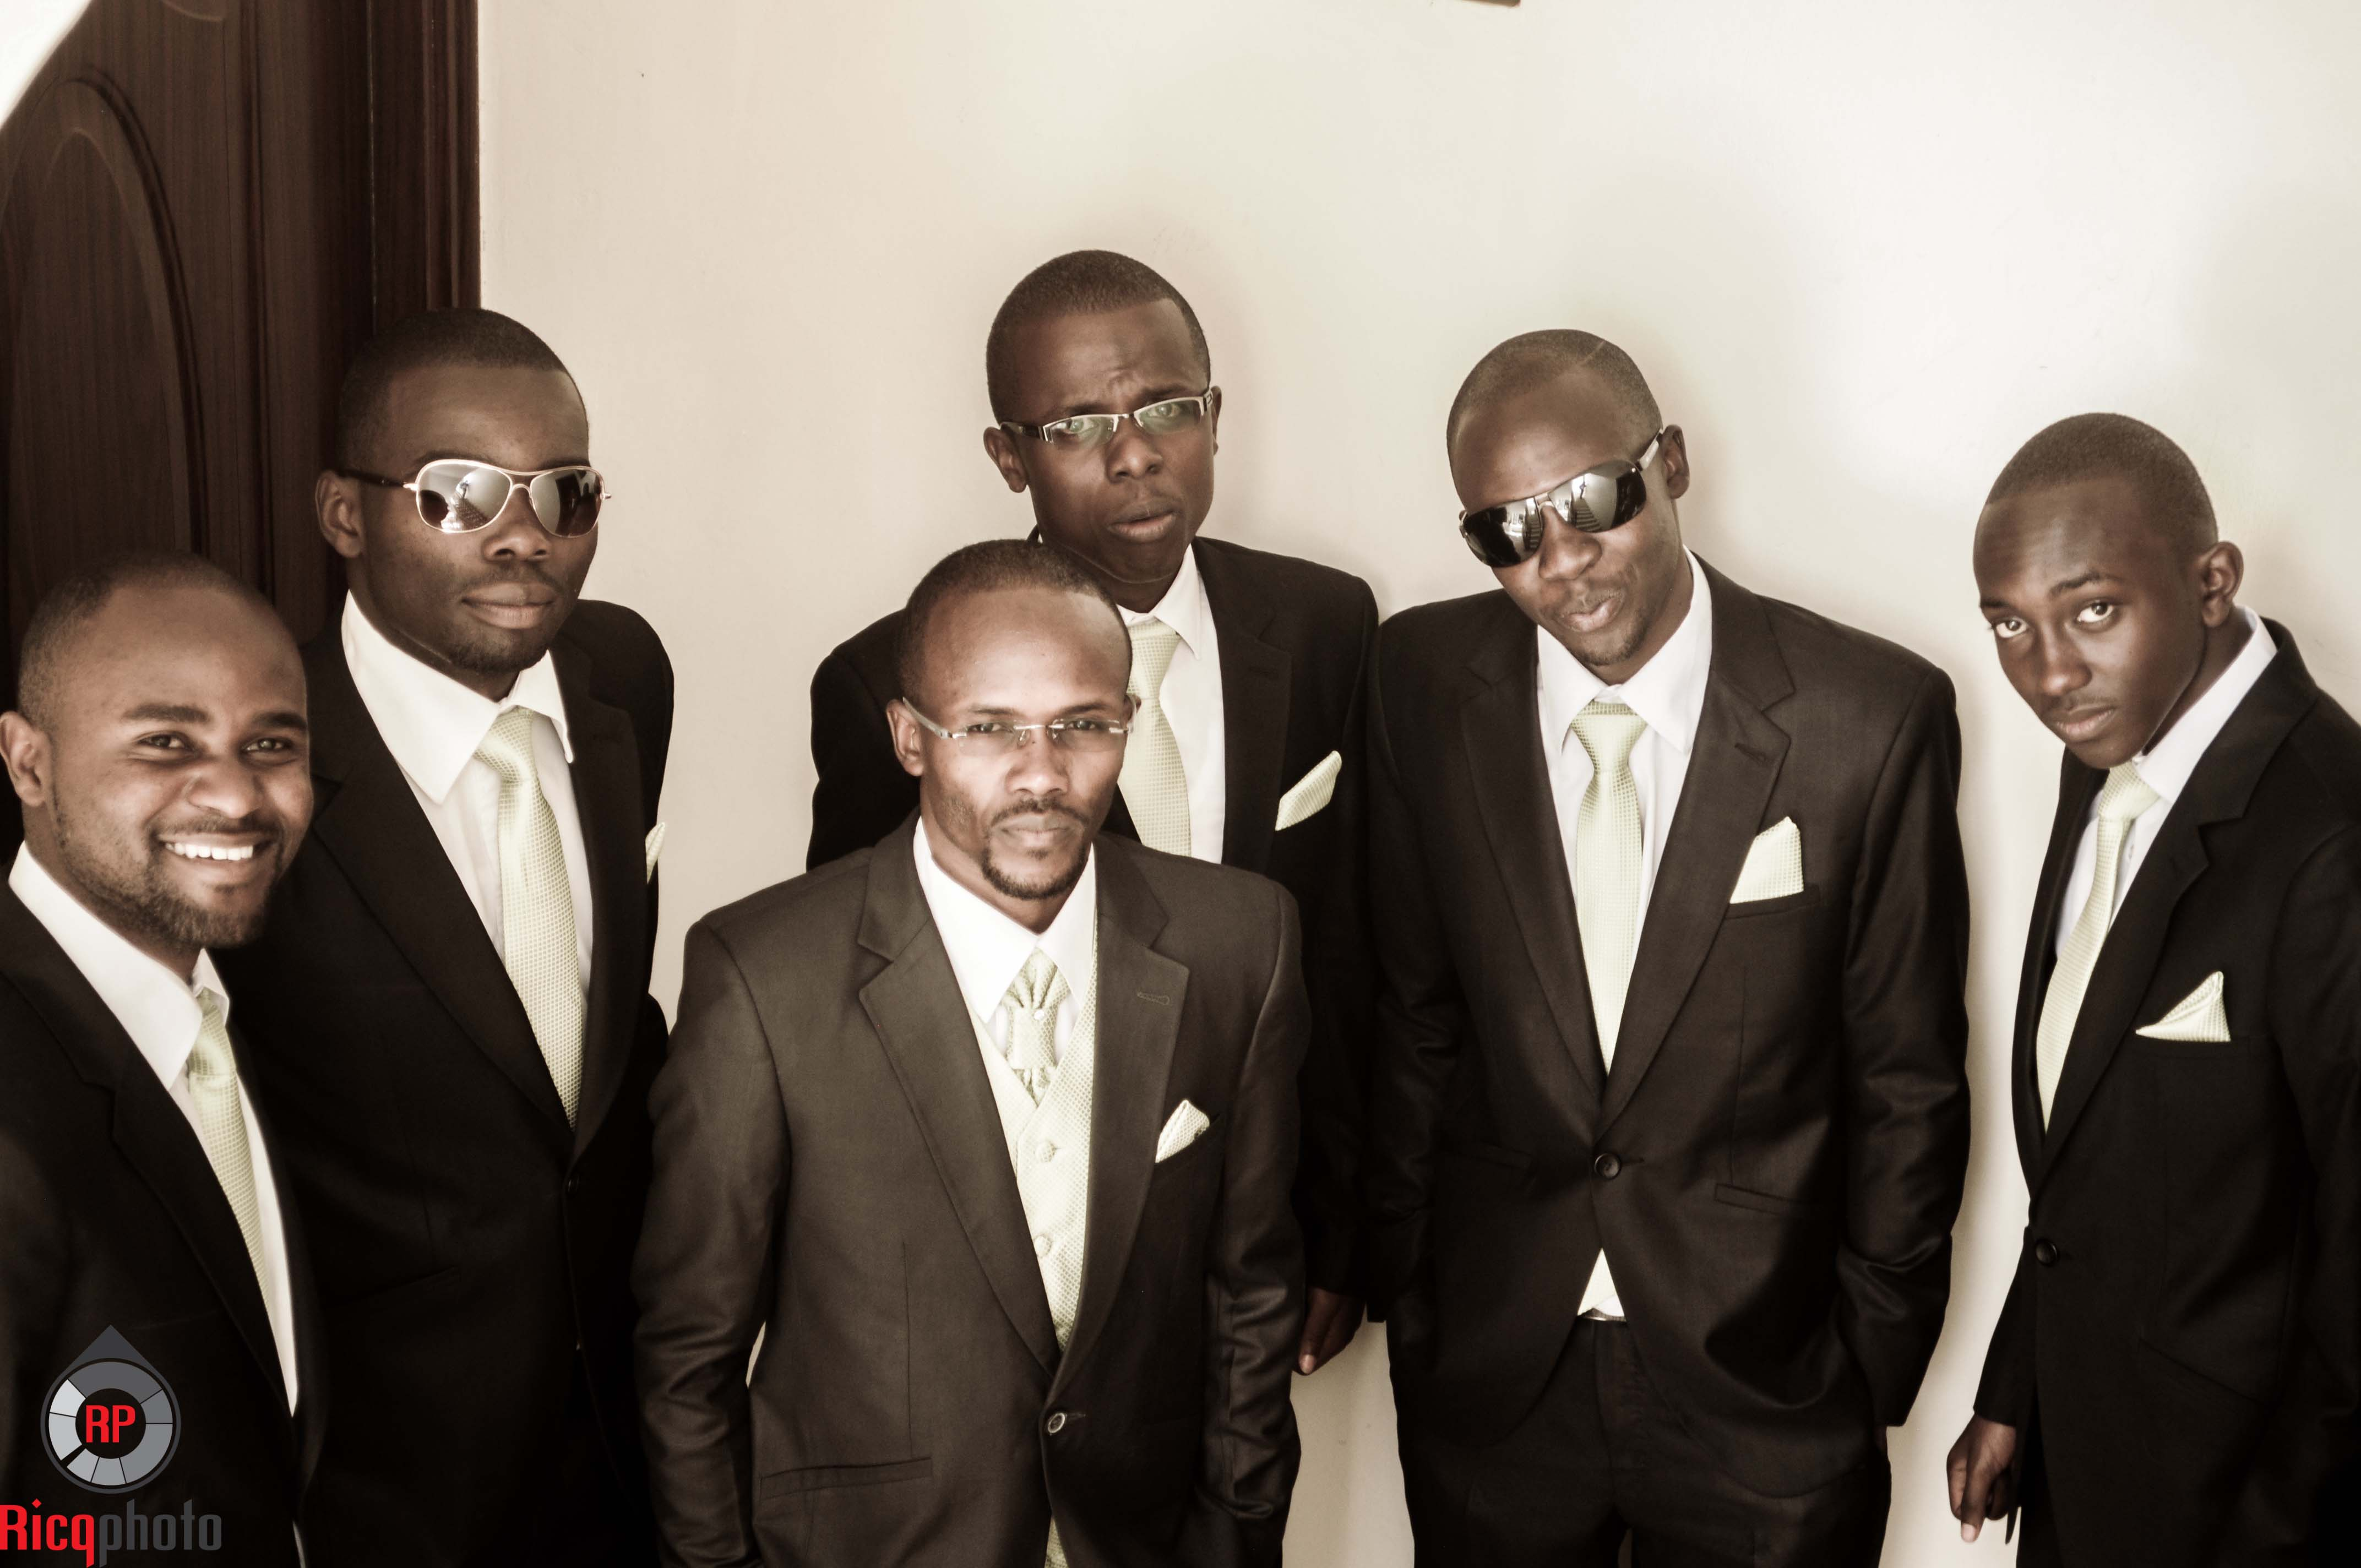 talk of stardom.... the men ready to hit the road for the venue..